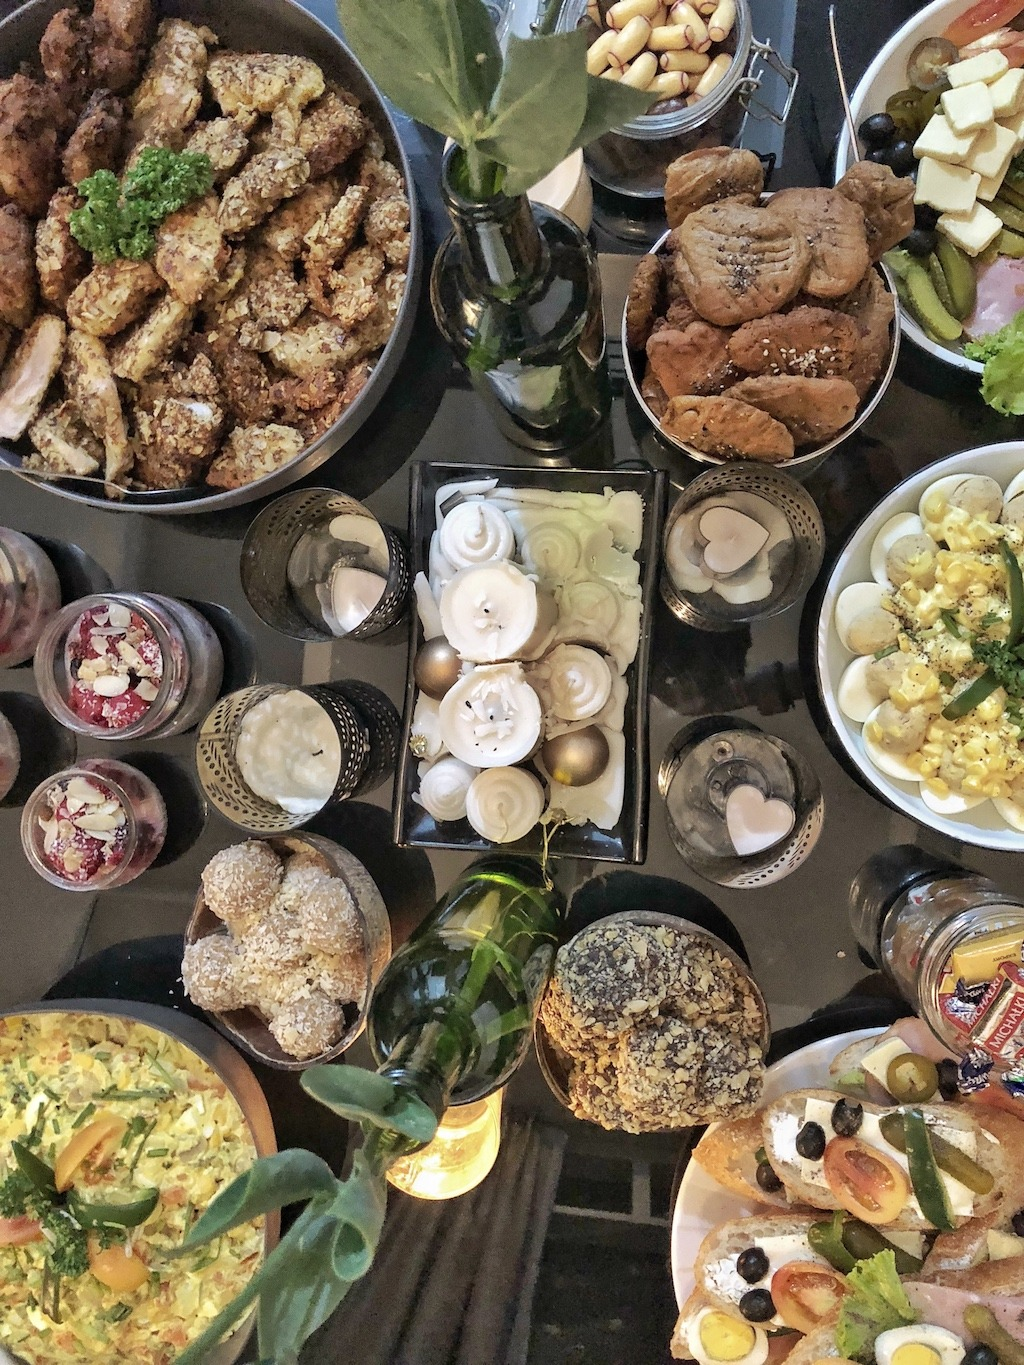 Party Table Homemade Ferrero Roche - Healthy Keto Fat Bombs Low Carb No Sugar Added